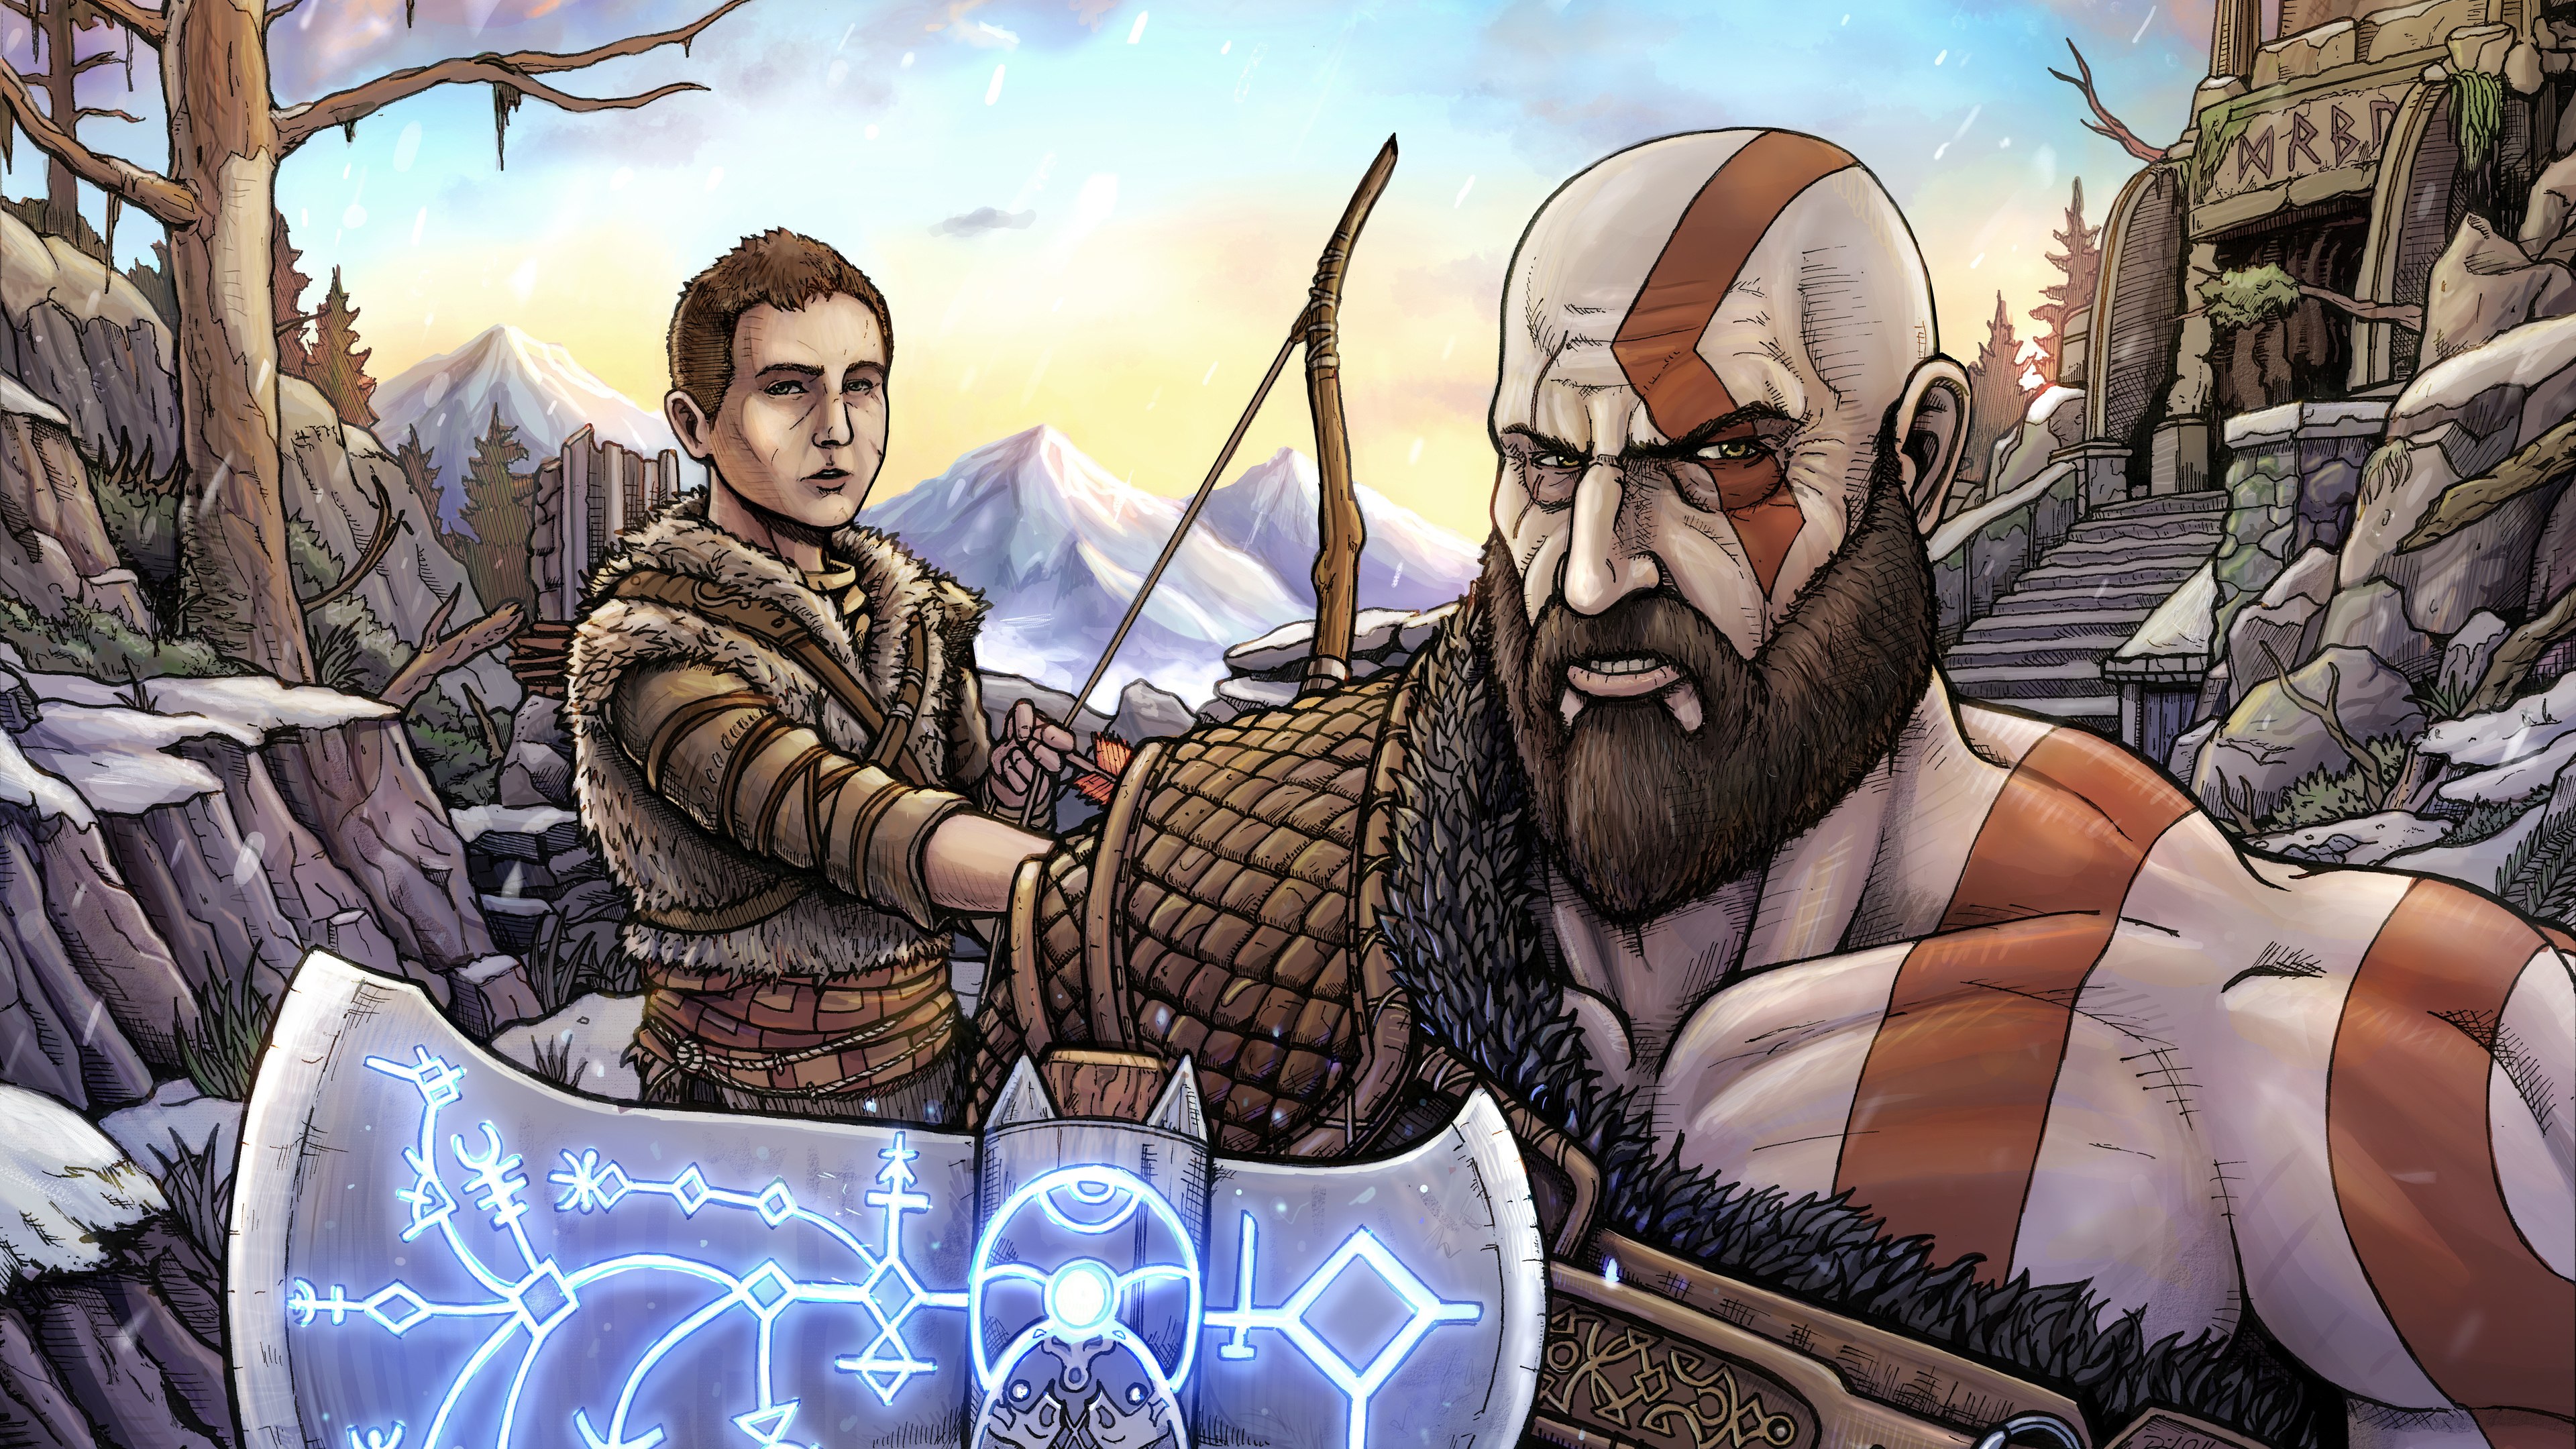 god of war 10k artwork 1537692042 - God Of War 10k Artwork - hd-wallpapers, god of war wallpapers, digital art wallpapers, deviantart wallpapers, artwork wallpapers, artist wallpapers, 8k wallpapers, 5k wallpapers, 4k-wallpapers, 10k wallpapers